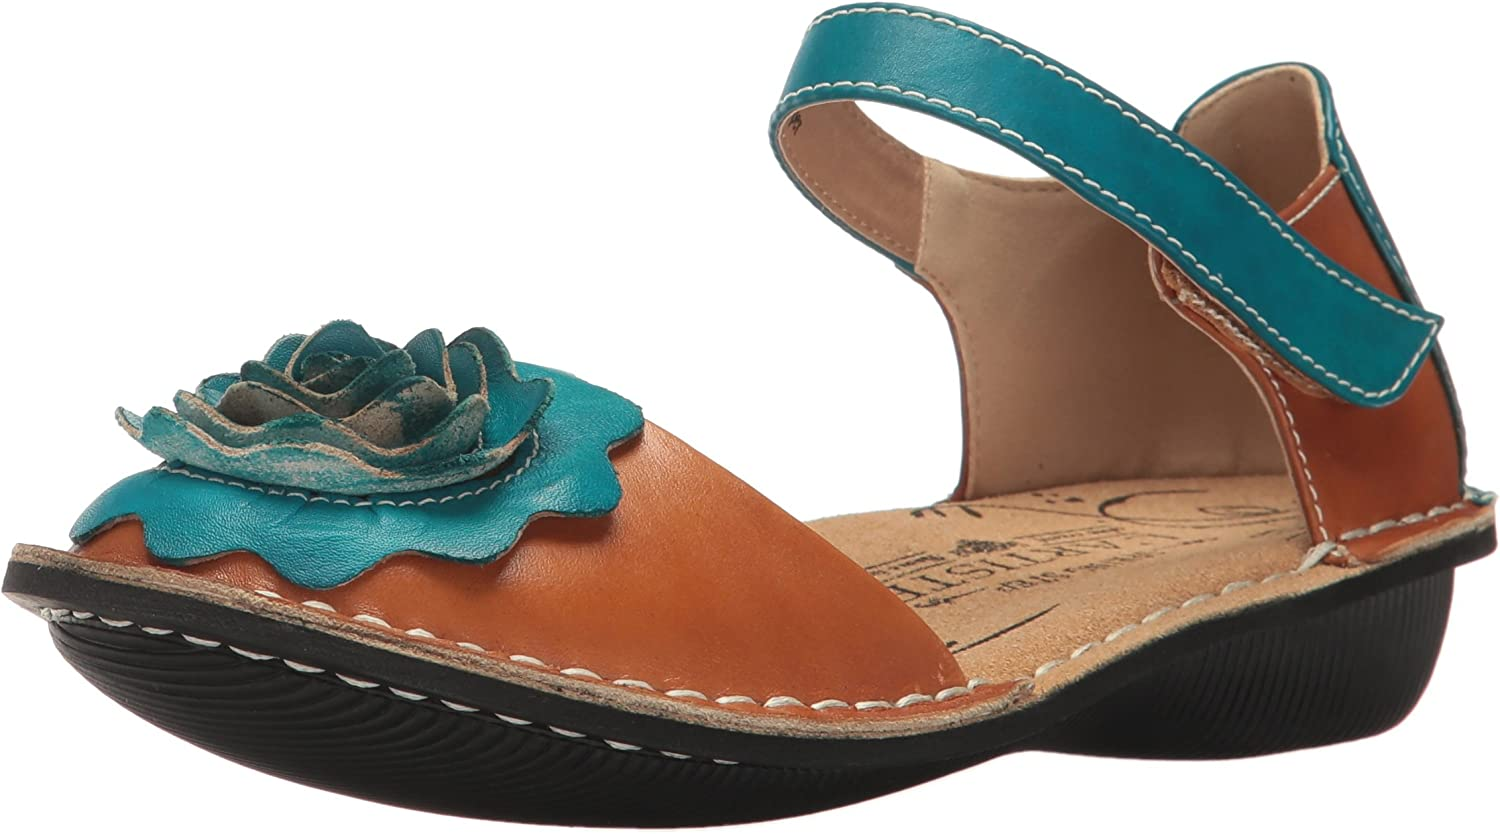 L'Artiste by Spring Step Womens Caicos-cam Mary Jane Flat